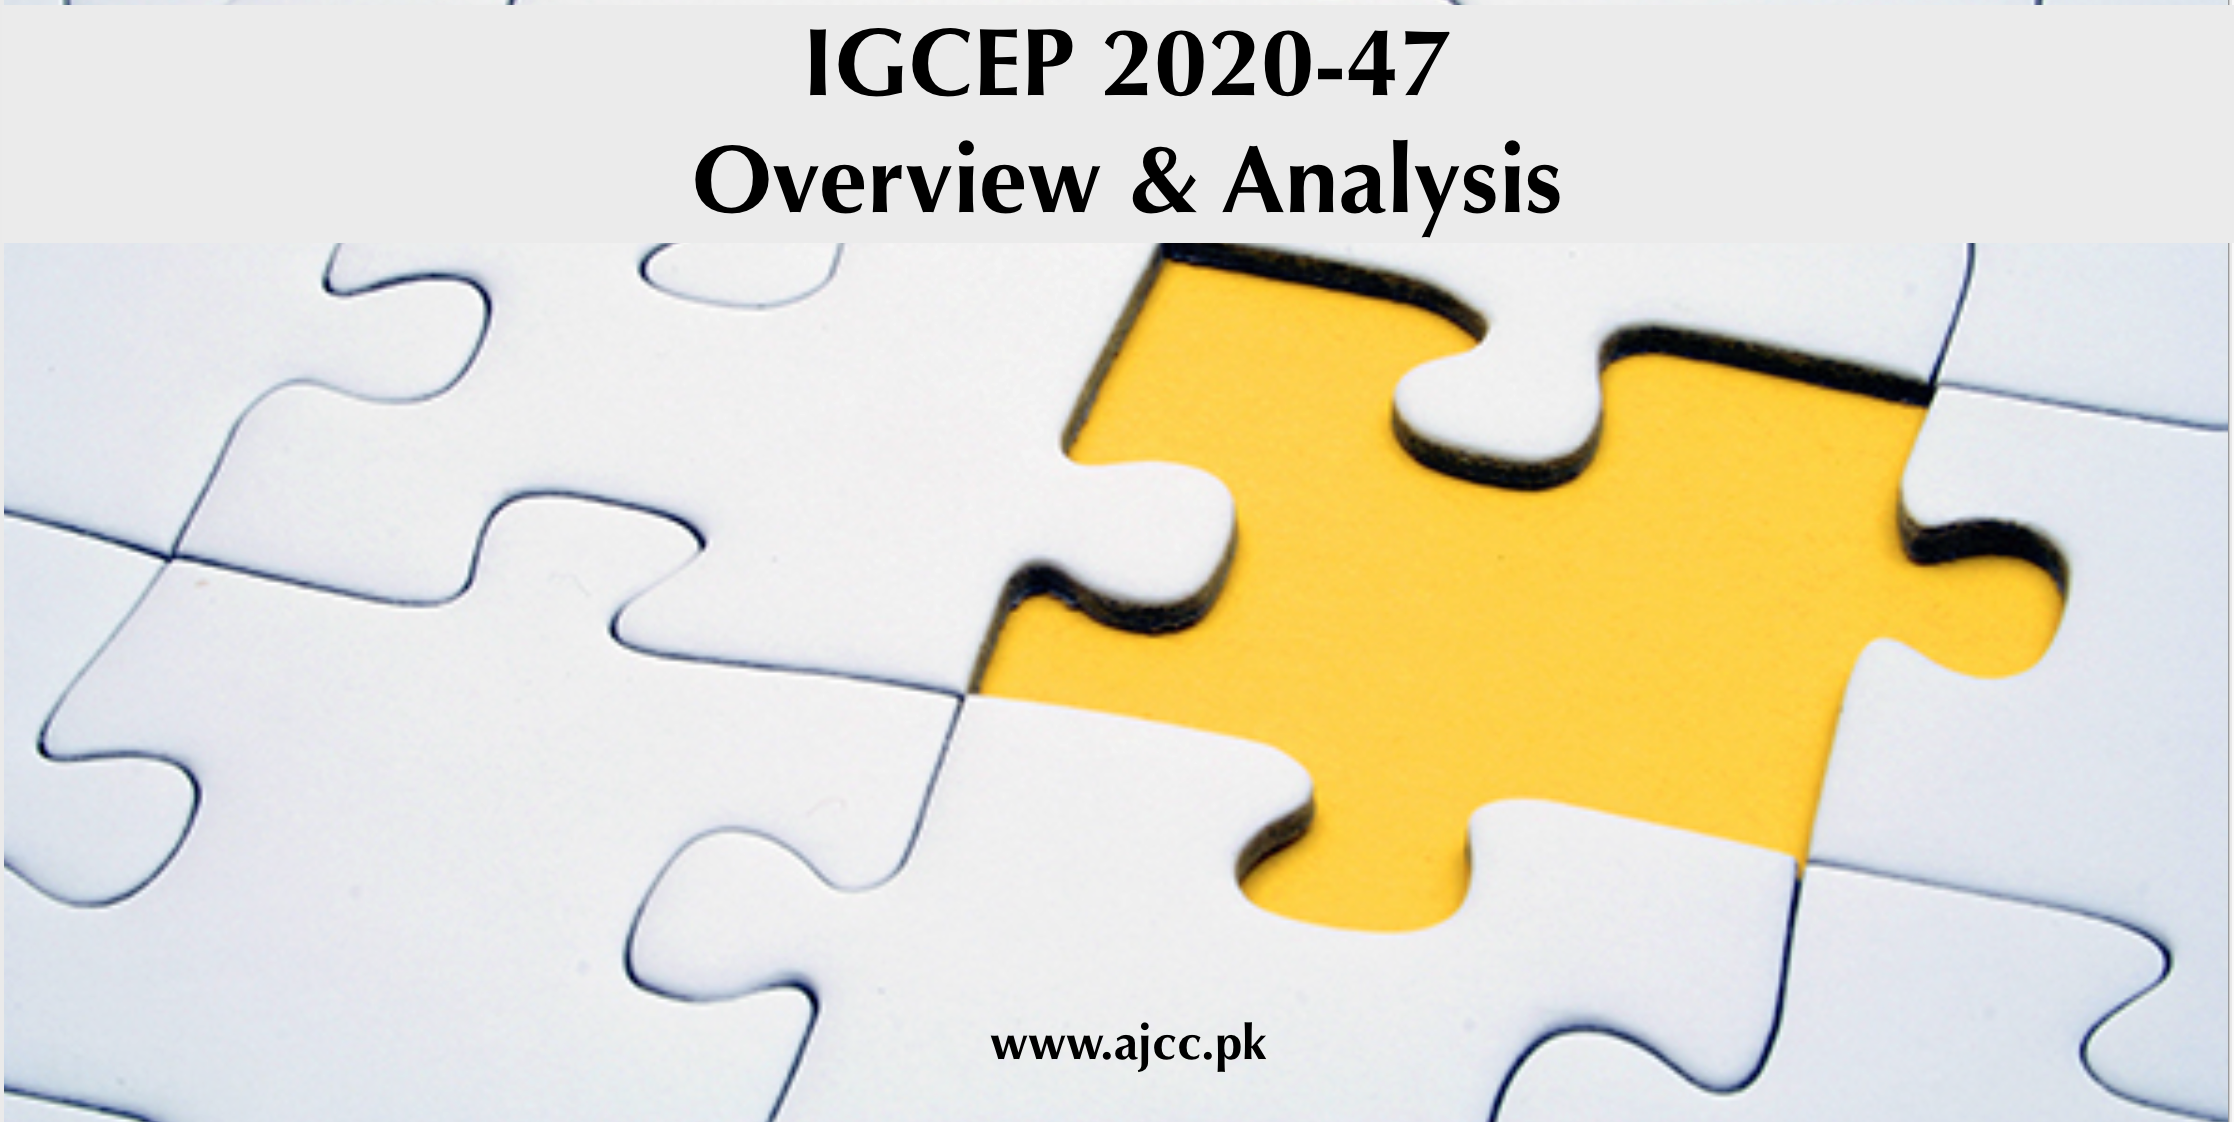 Overview of IGCEP 2020-47